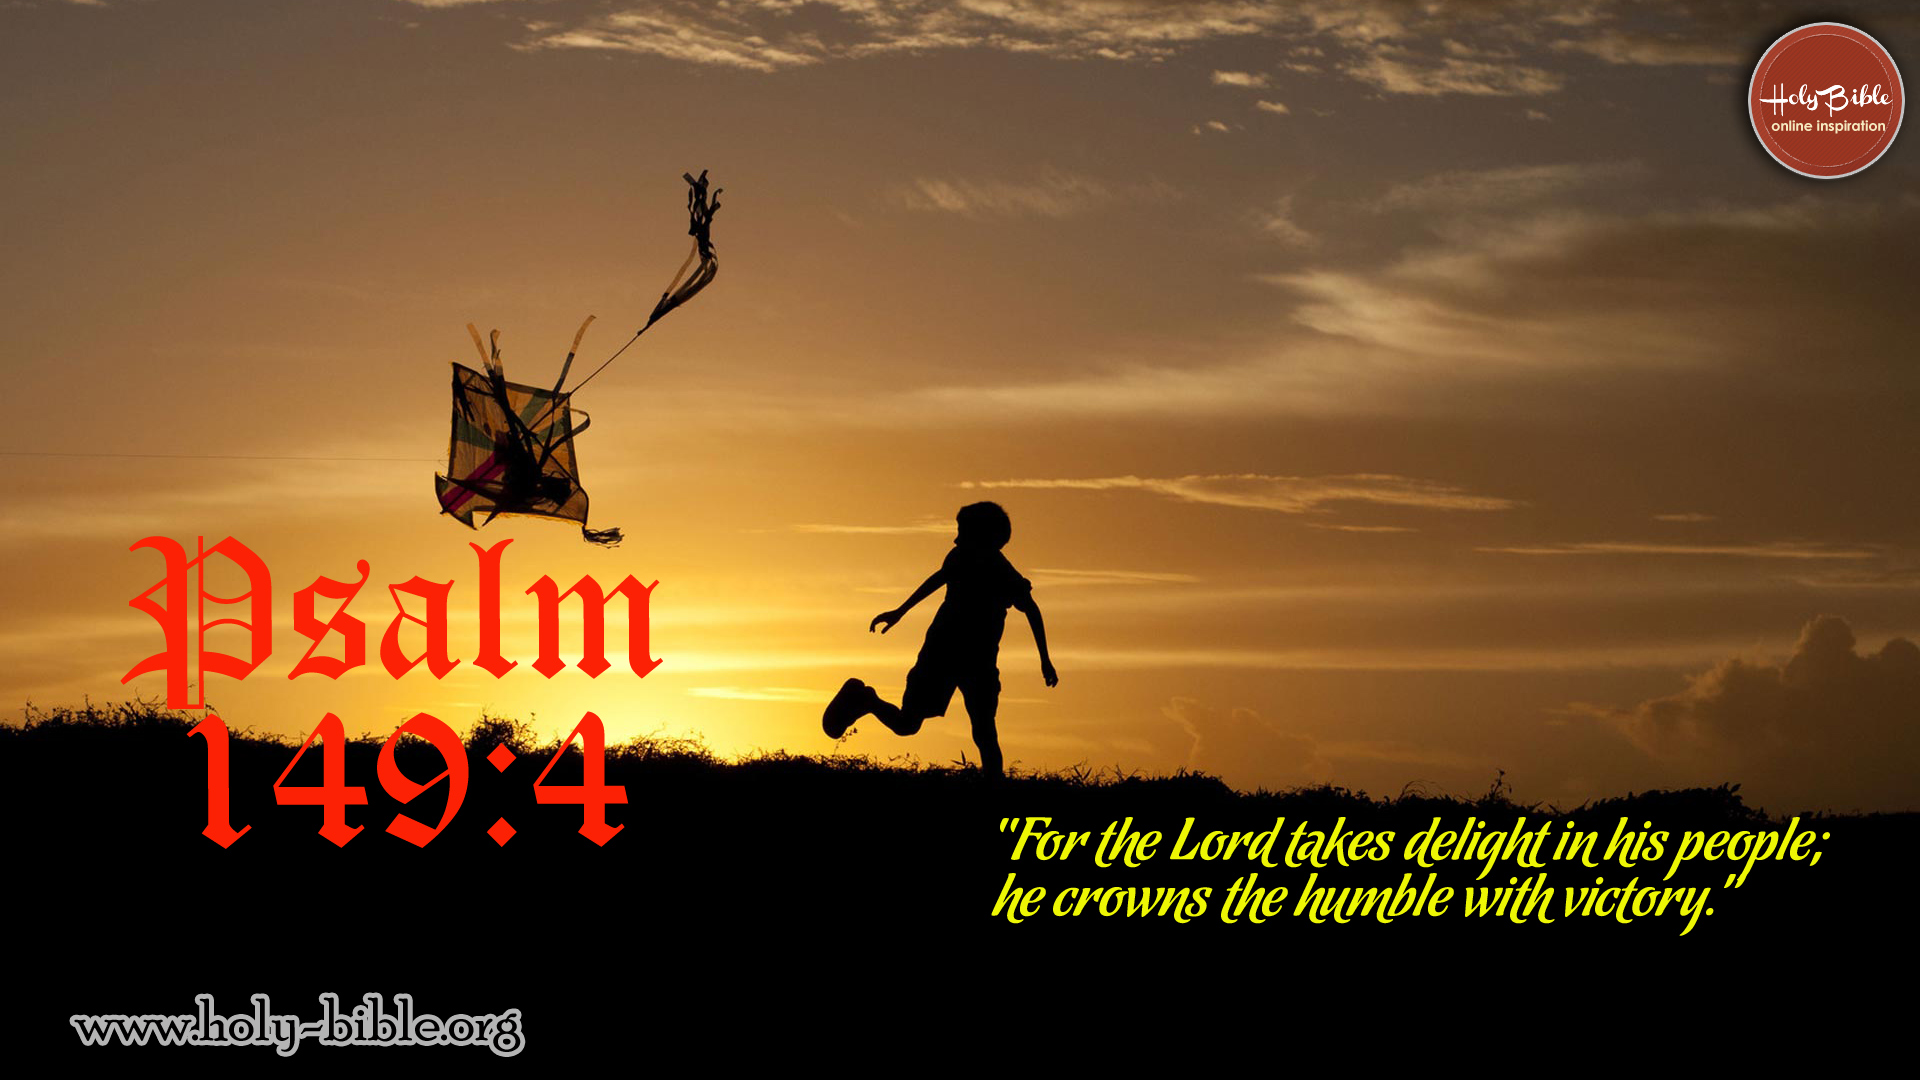 Bible Verse of the day - Psalm 149:4